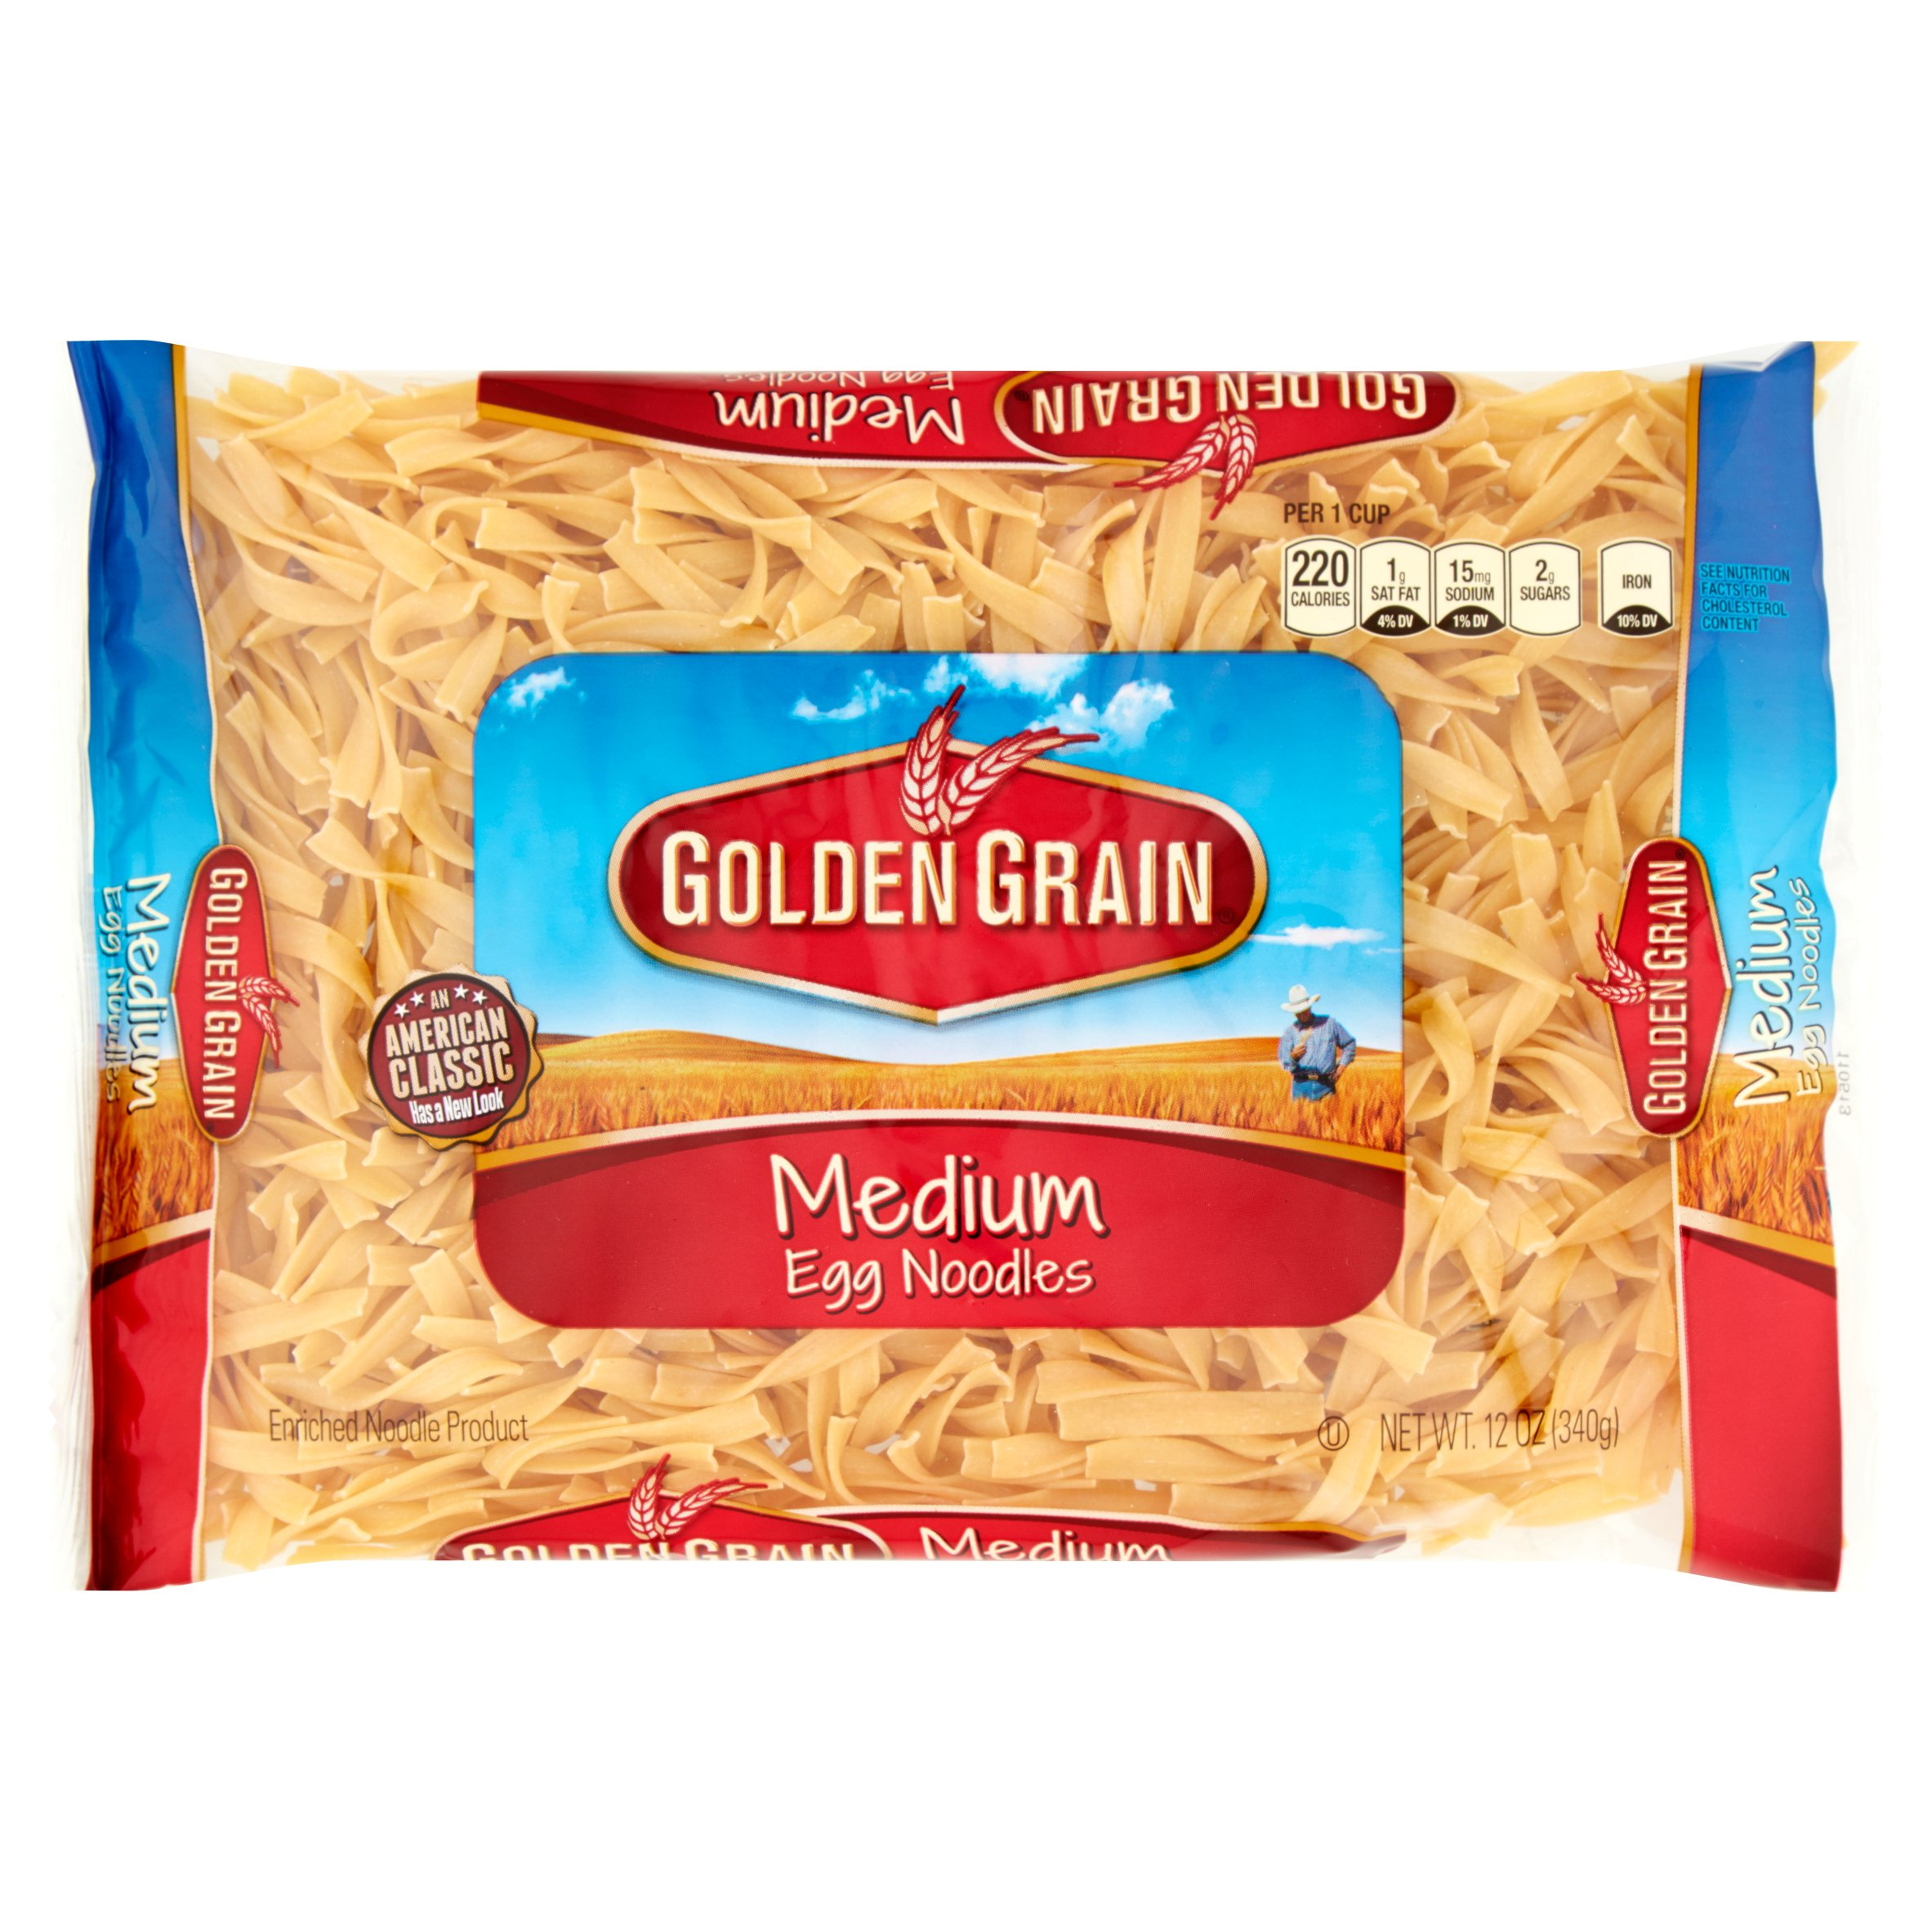 Golden Grain Medium Egg Noodles 12 oz